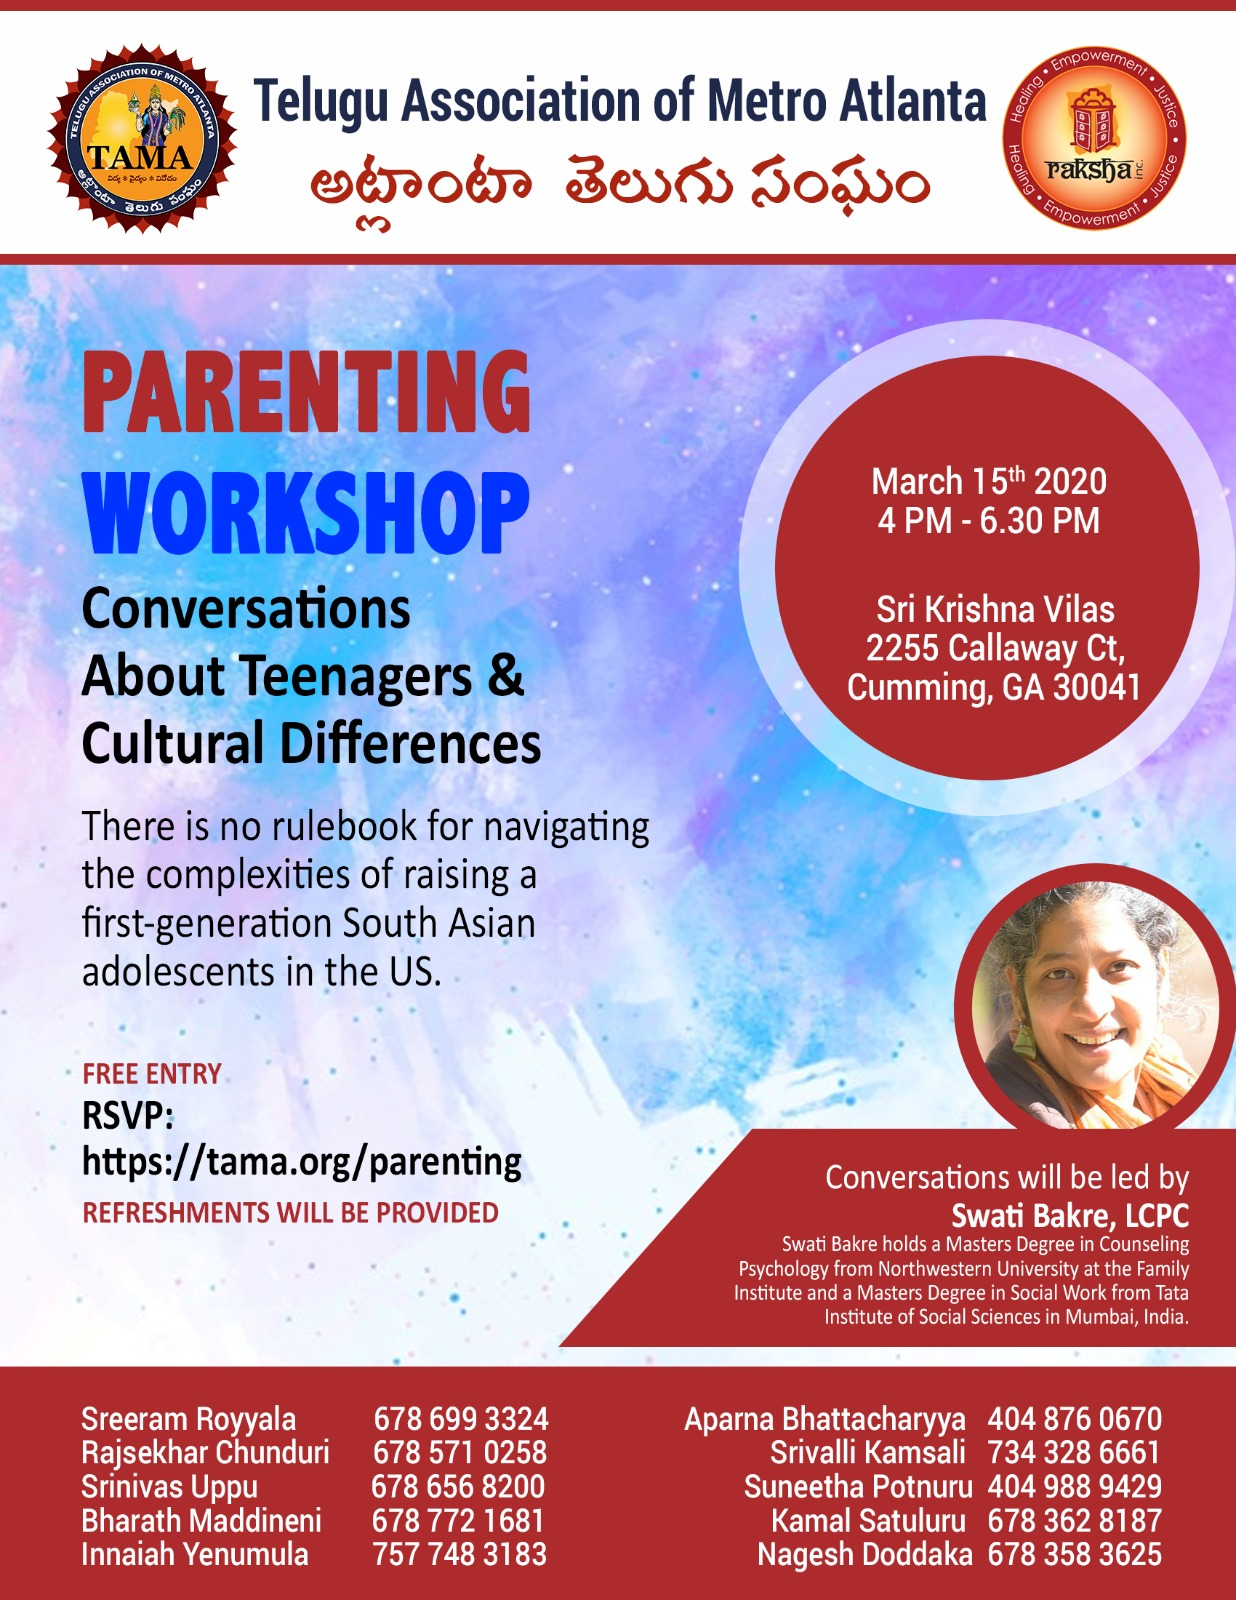 TAMA Parenting Workshop